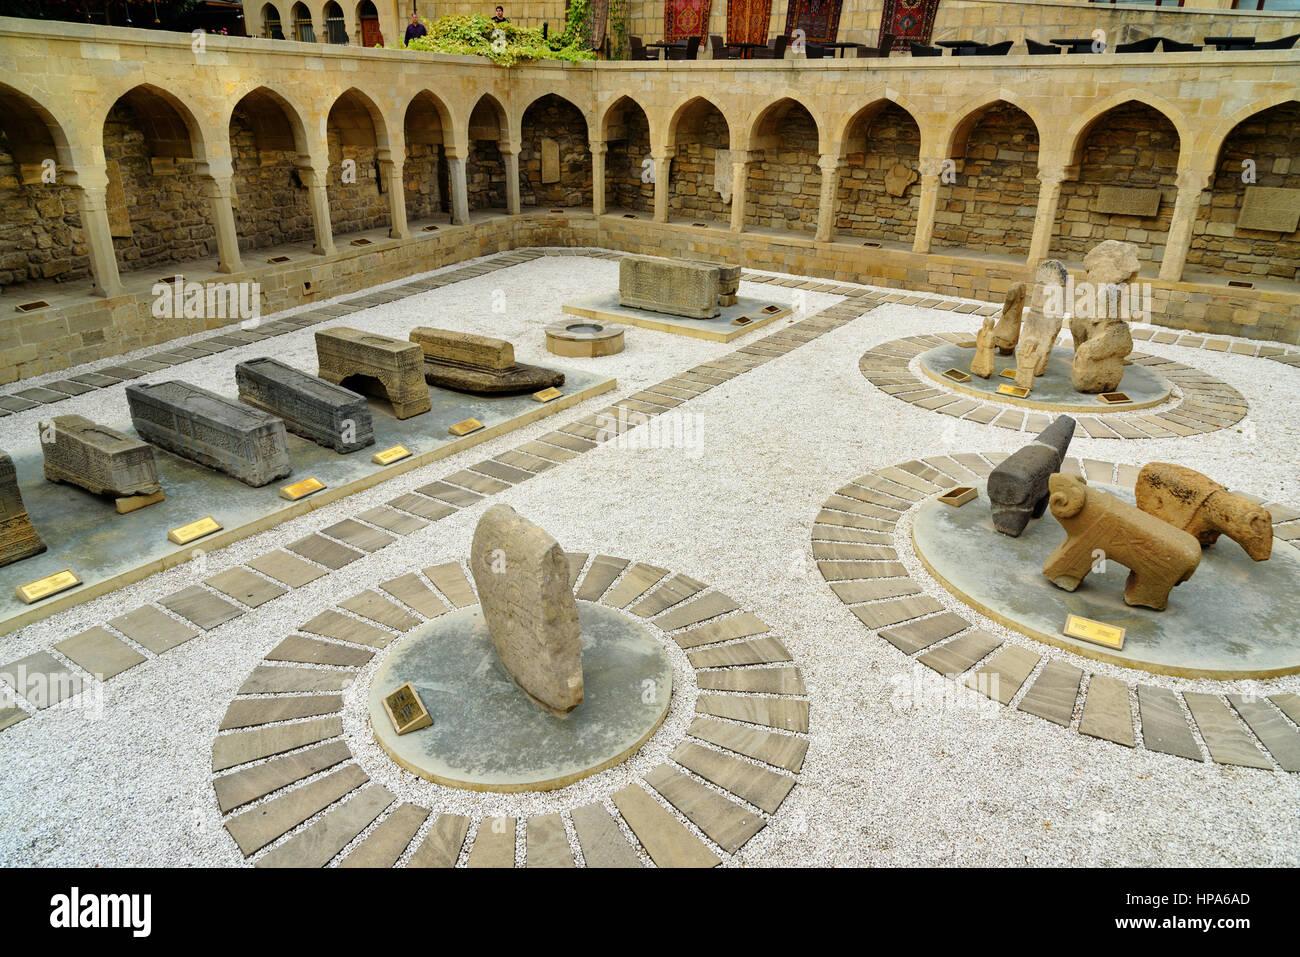 Baku, Azerbaijan - September 10, 2016: Arcades and religious burial place in Old city, Icheri Sheher is the historical - Stock Image